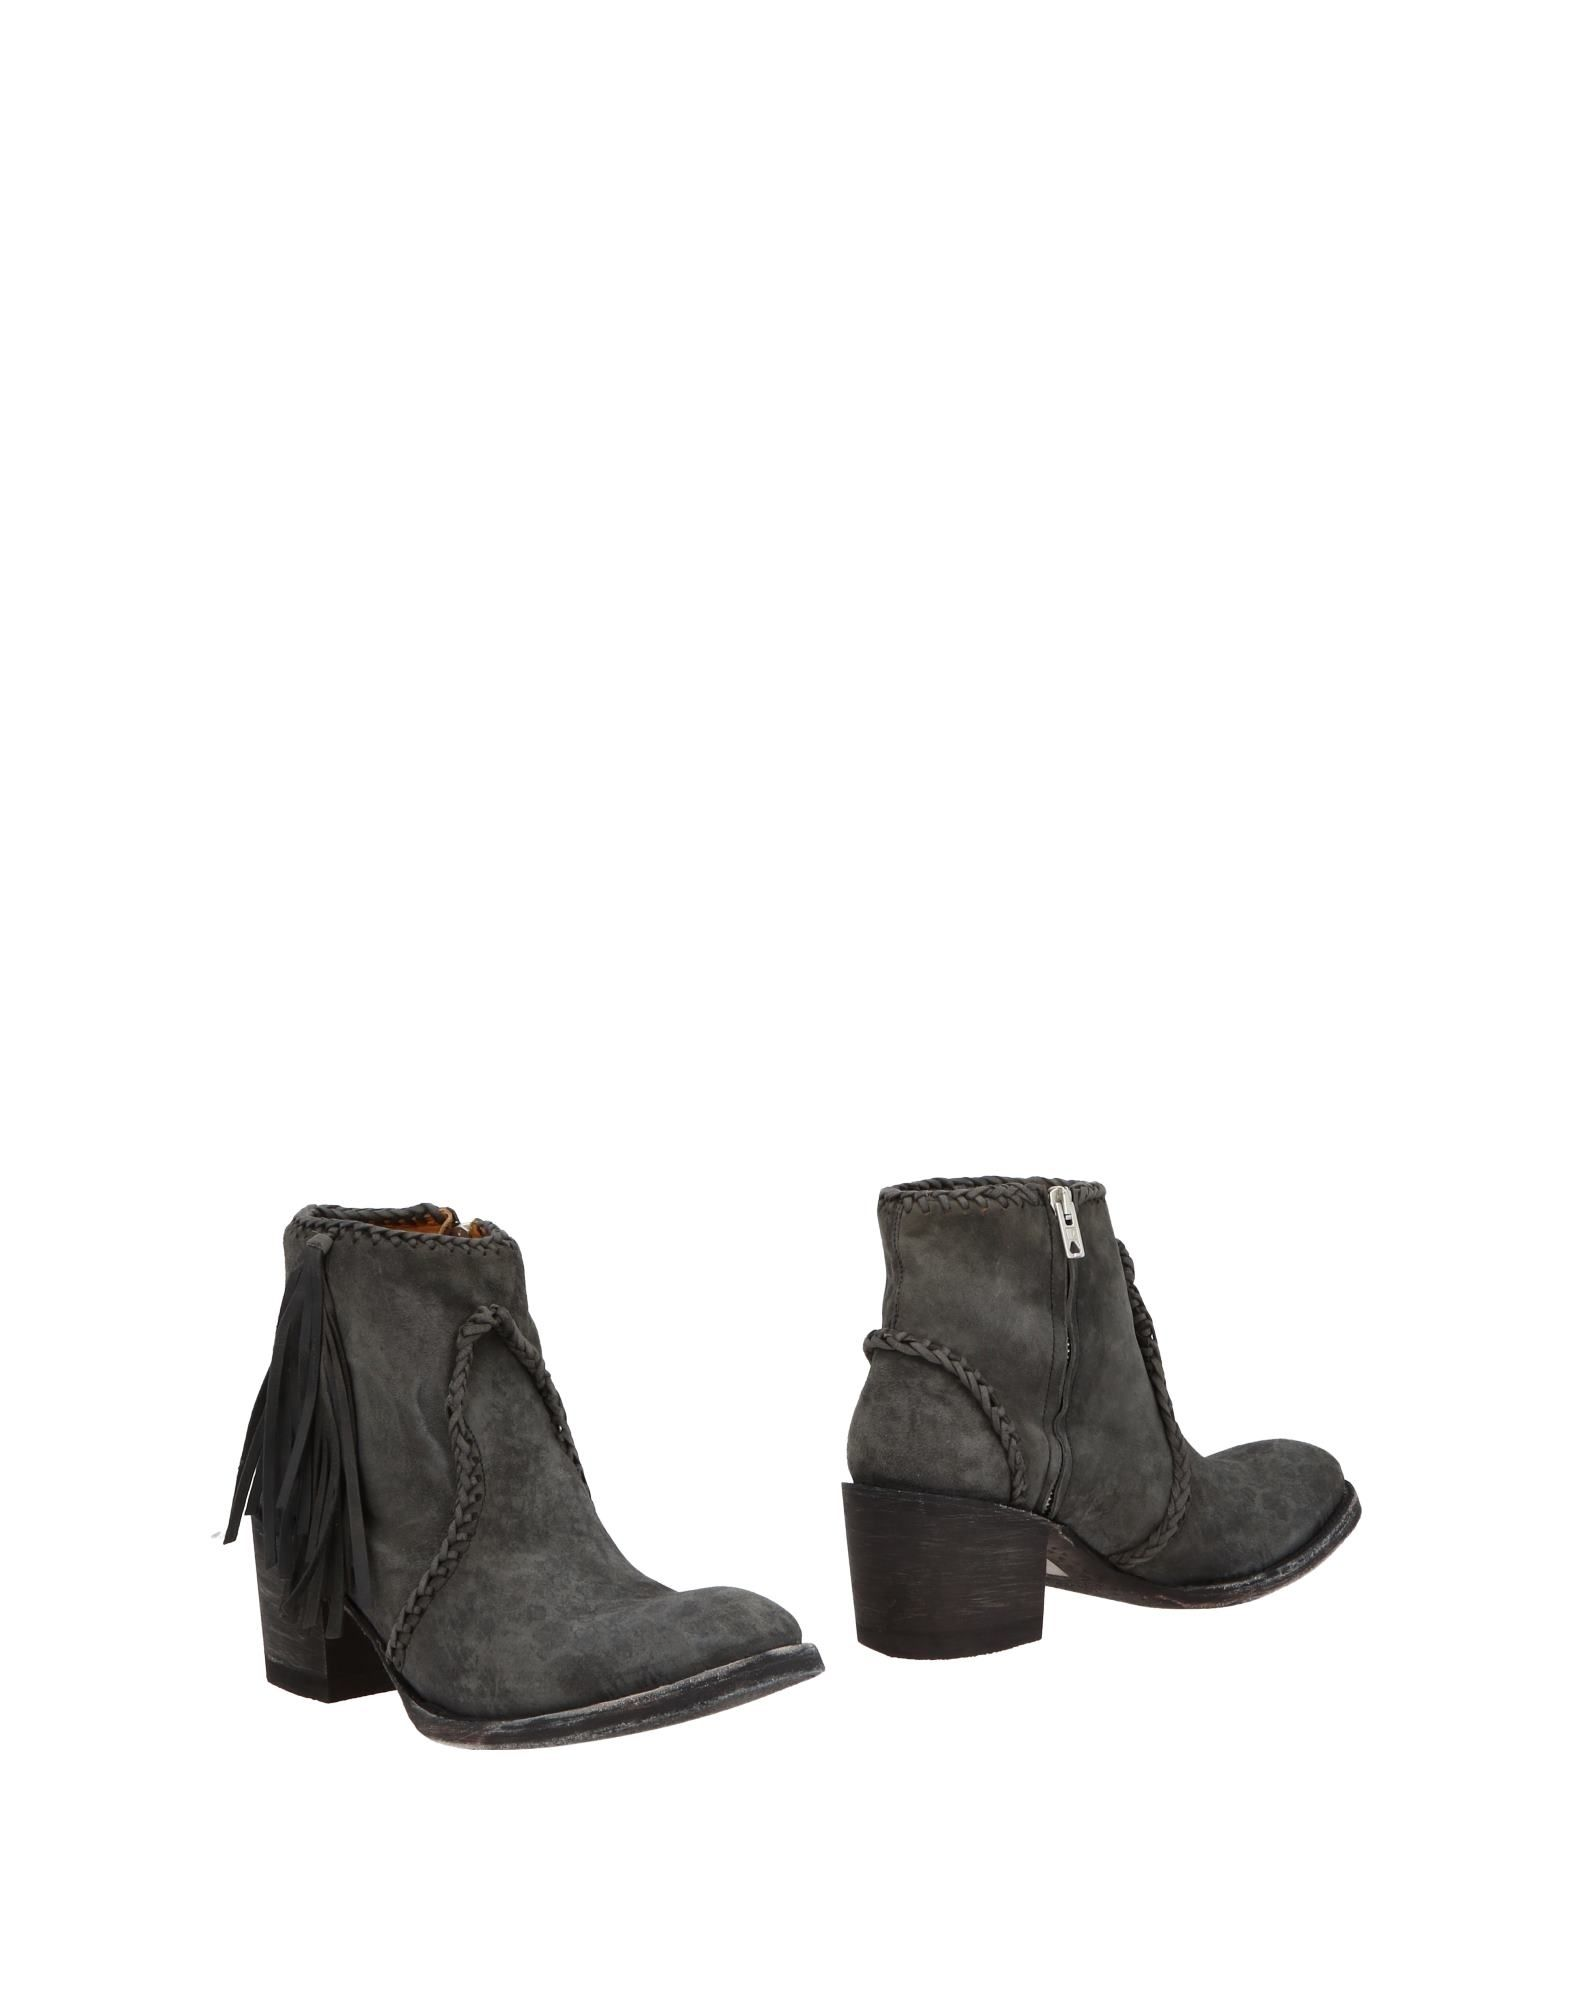 Mexicana Mexicana Ankle Boot - Women Mexicana Mexicana Ankle Boots online on  Australia - 11498801HL 26b18d